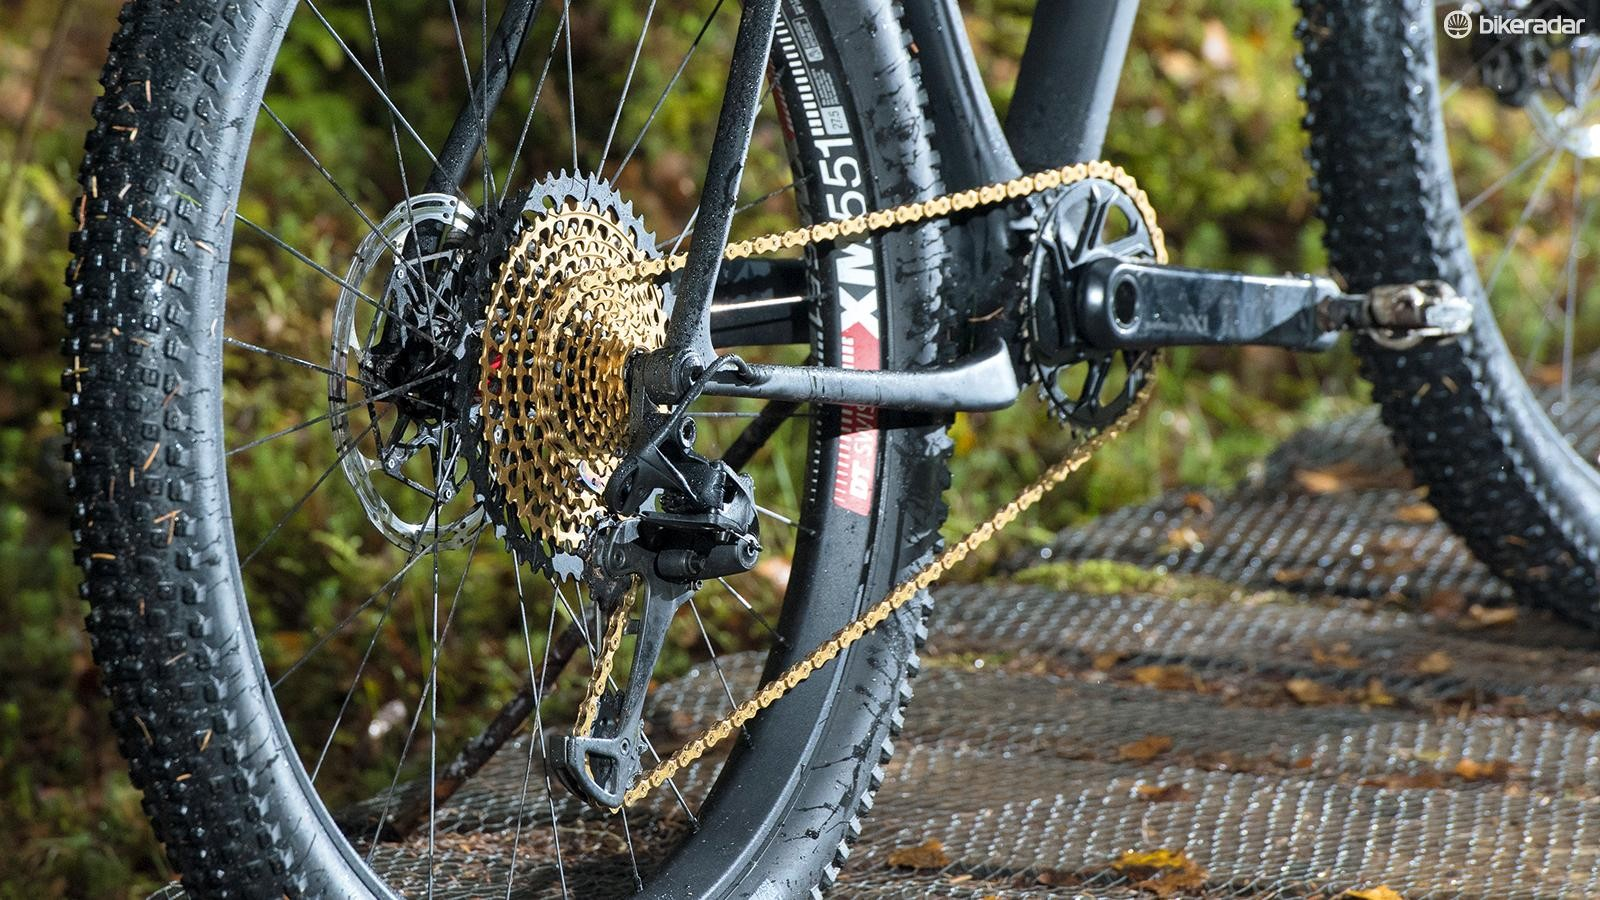 SRAM Eagle doesn't just increase gear range, it shifts better and runs smoother too